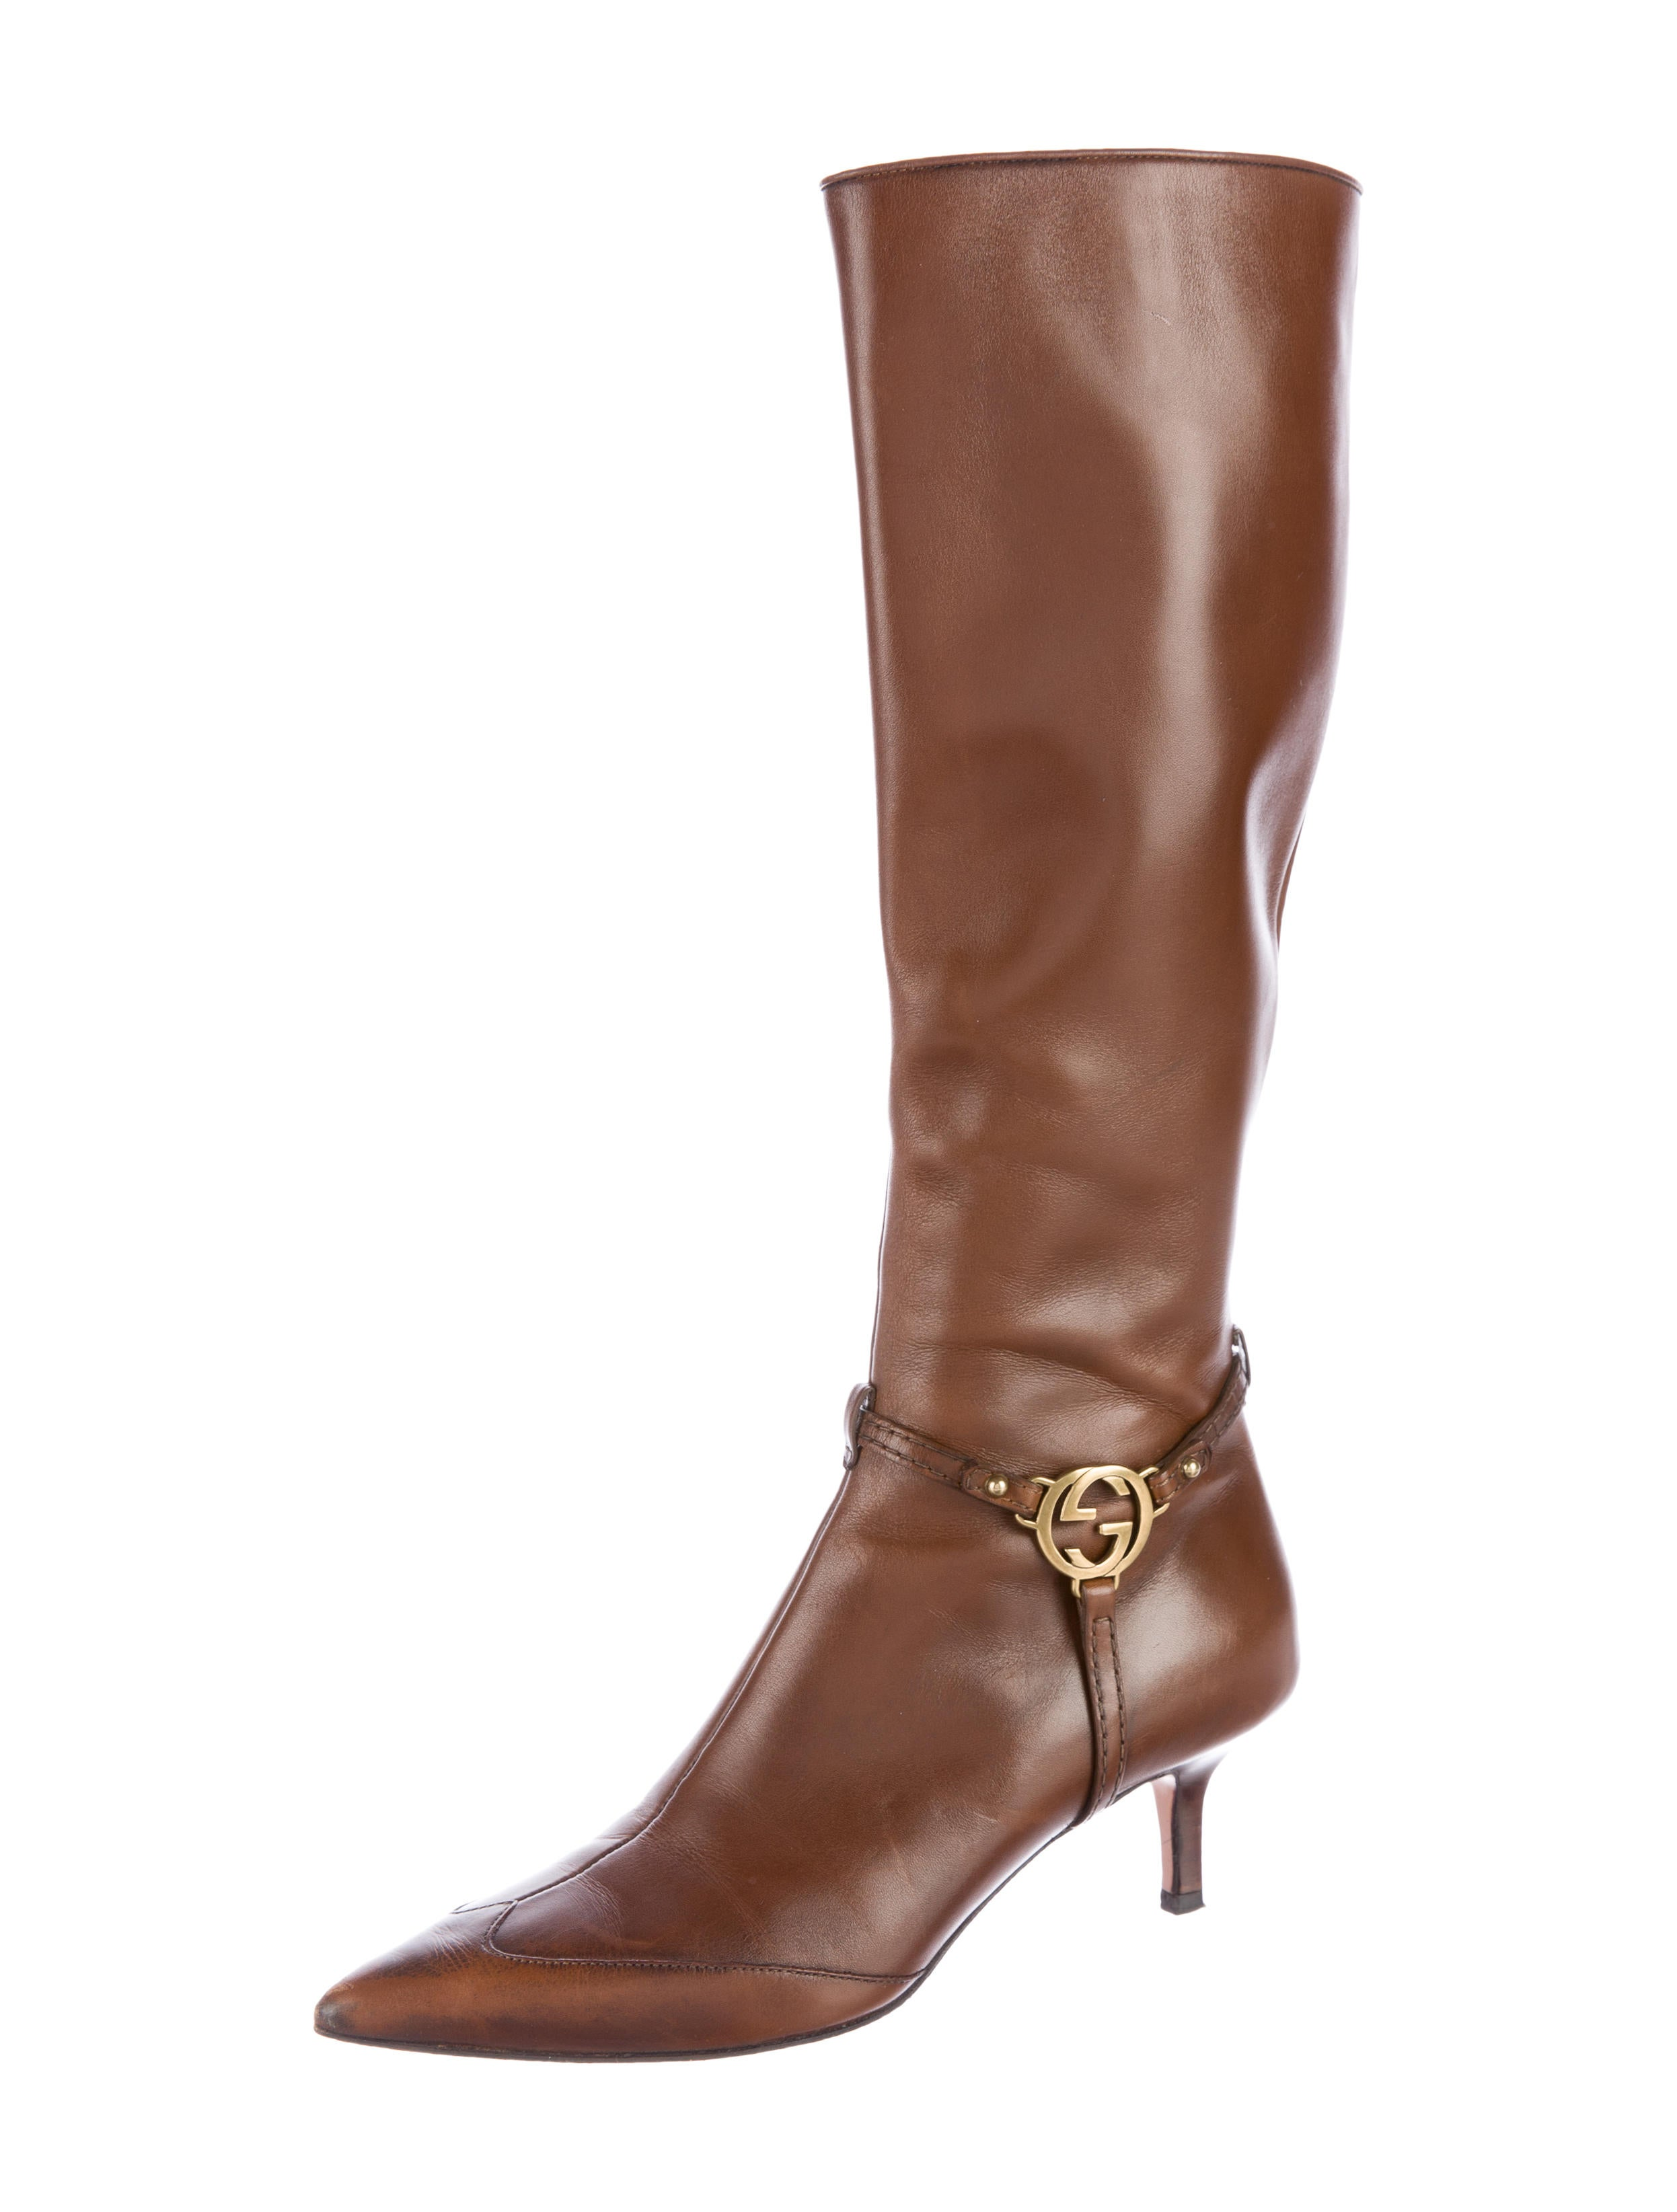 gucci gg leather boots shoes guc125398 the realreal